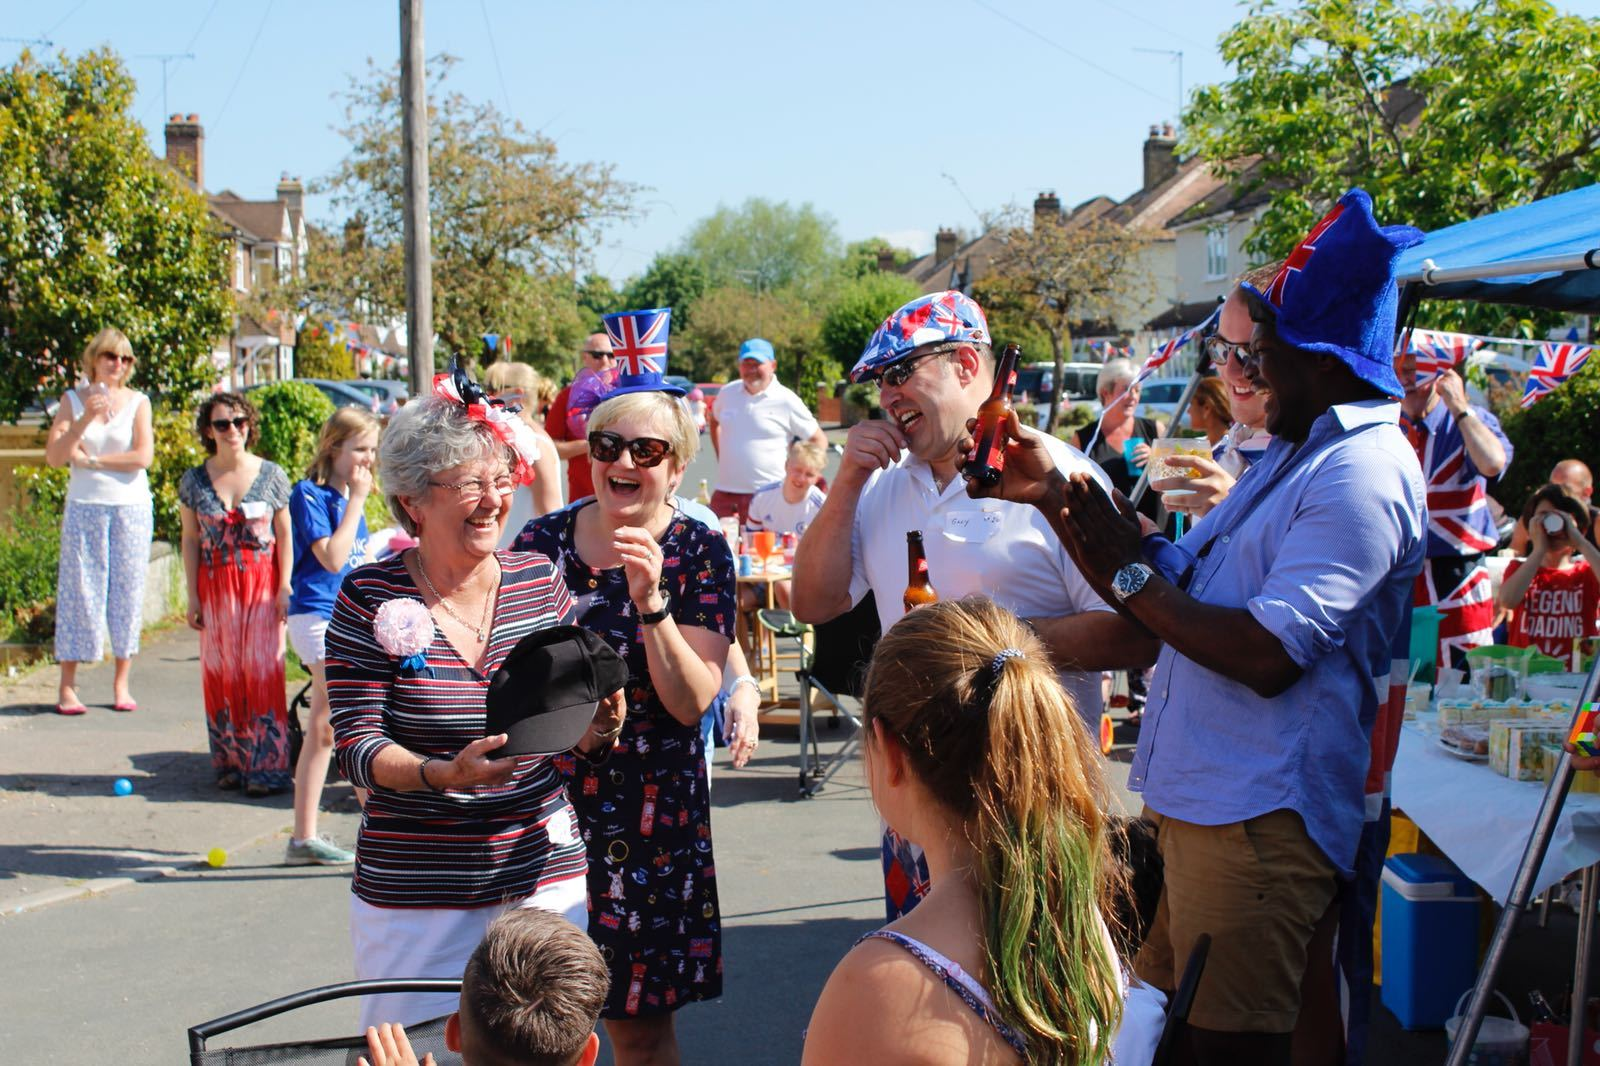 The lively street party in Barnett Close